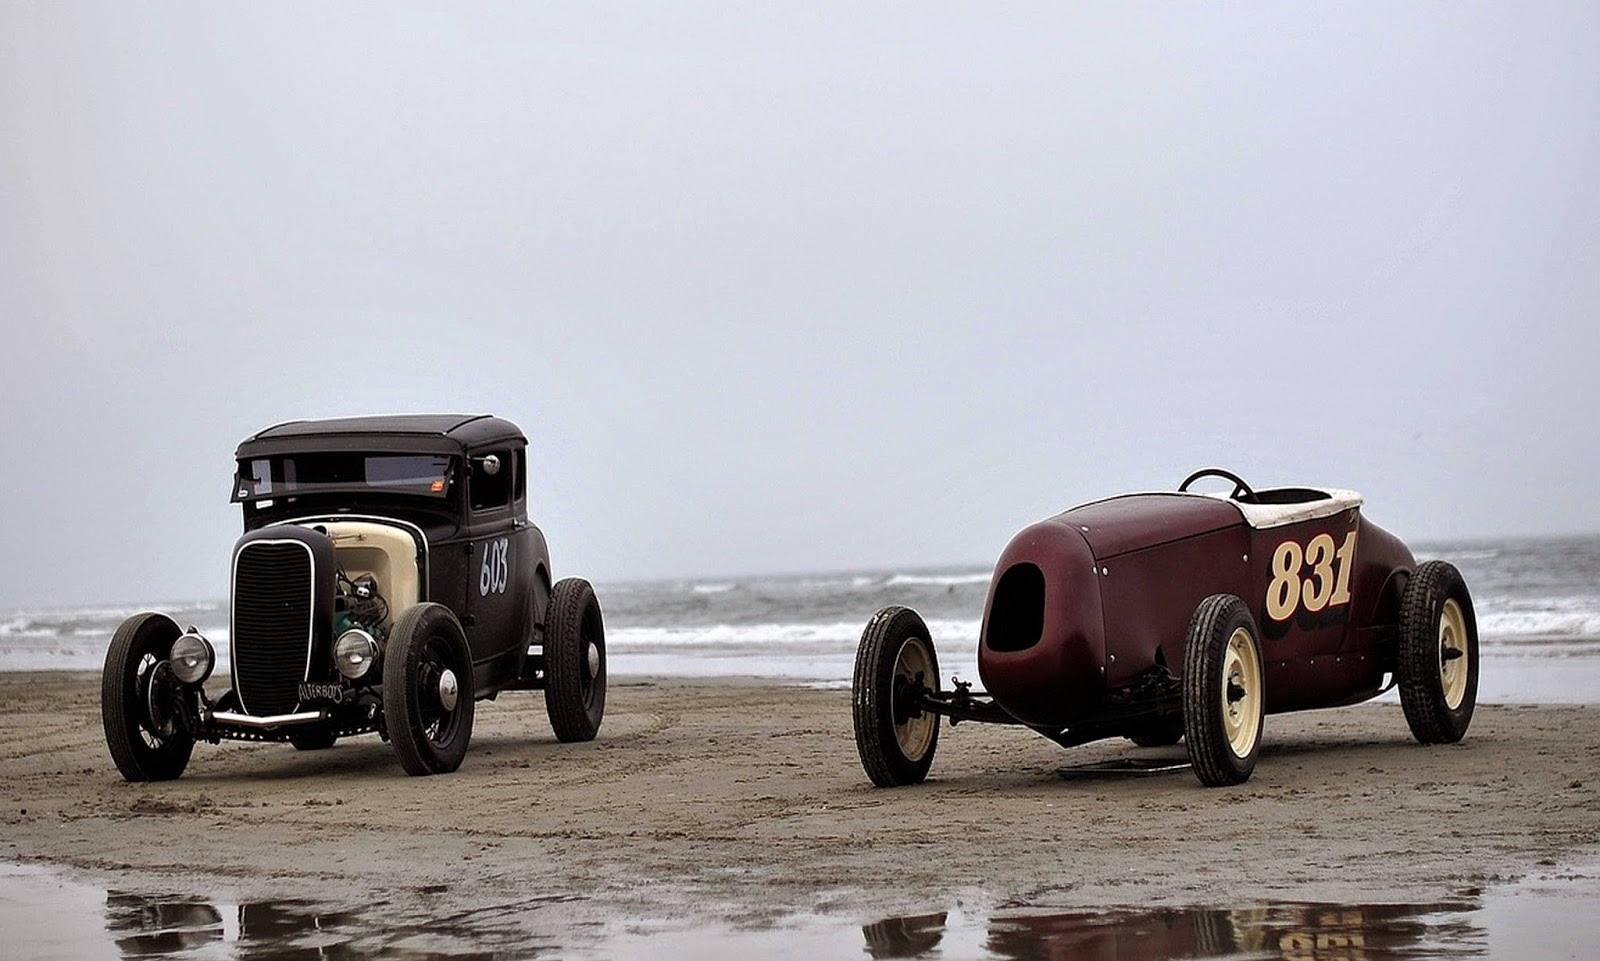 From There The Car Club Grew To Become Quite Large In 2012 Had Great Idea Host First Race Of Gentlemen Gentilmen TROG Is